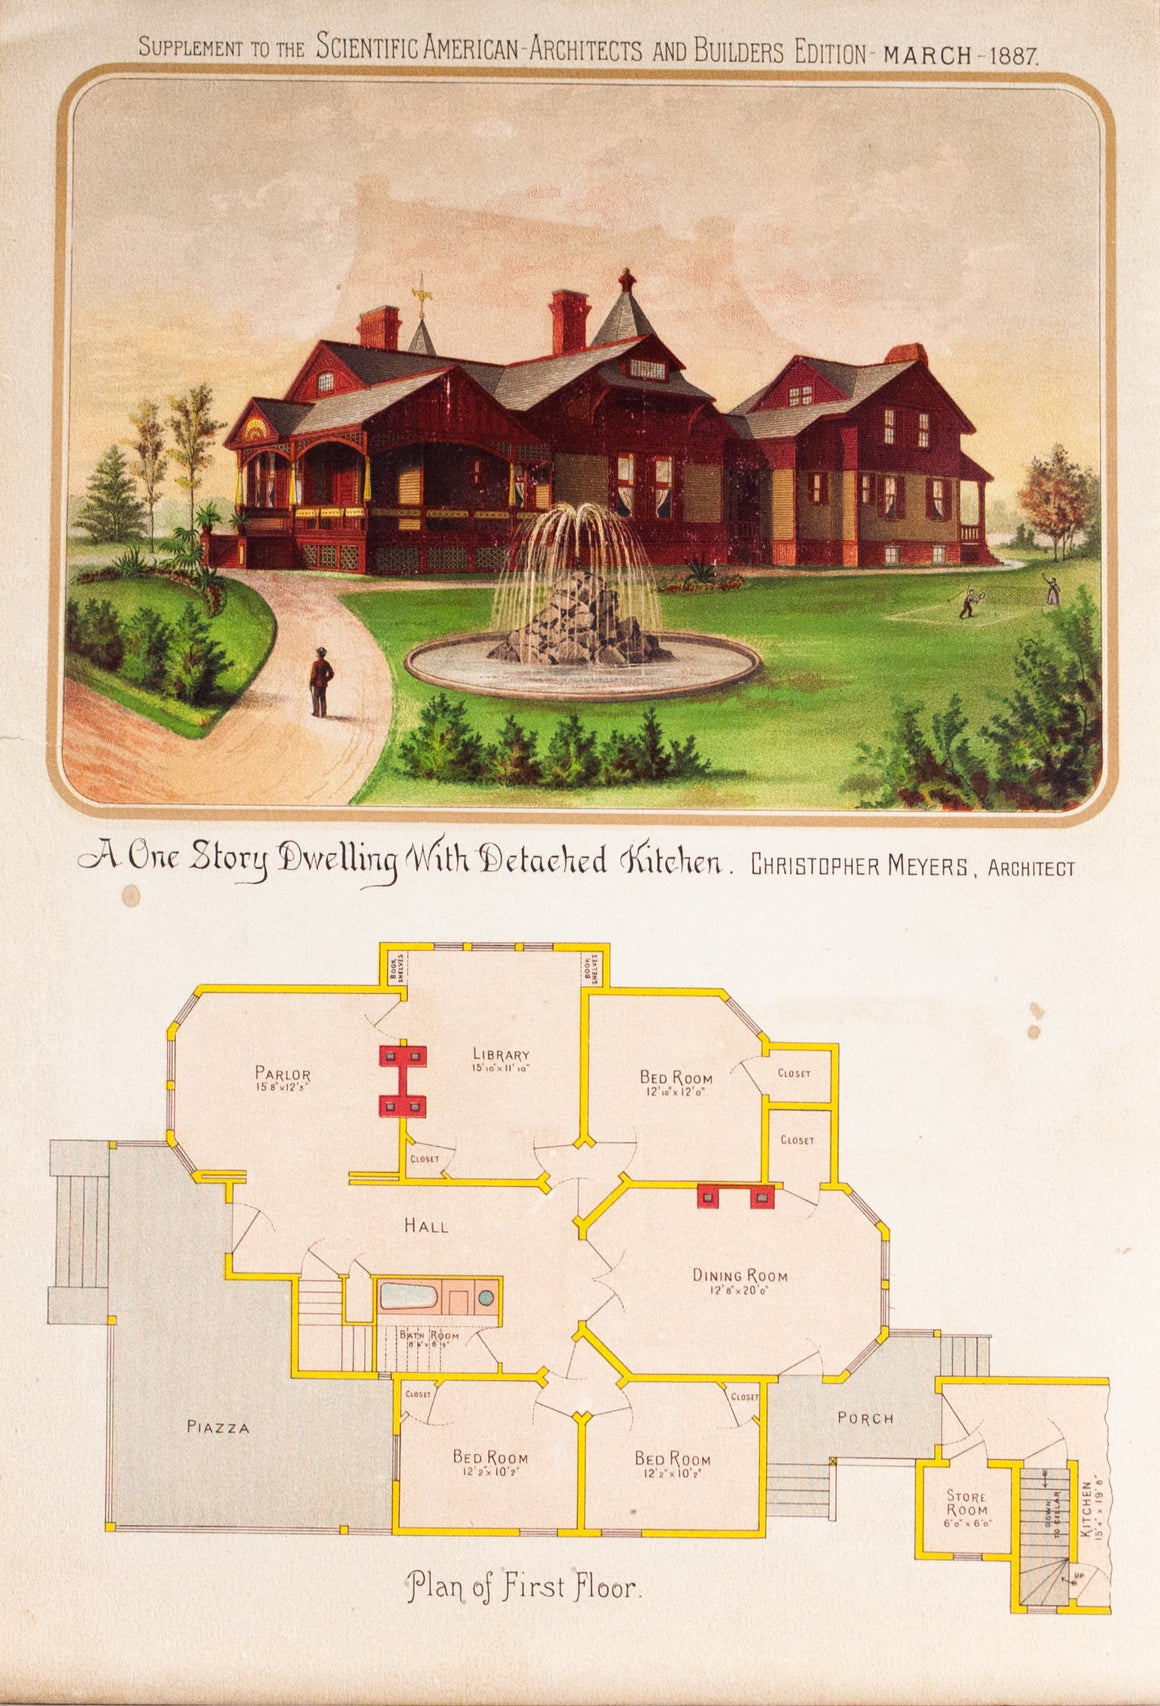 1887 One Story Dwelling with Detached Kitchen by Christopher Meyers - Scientific American